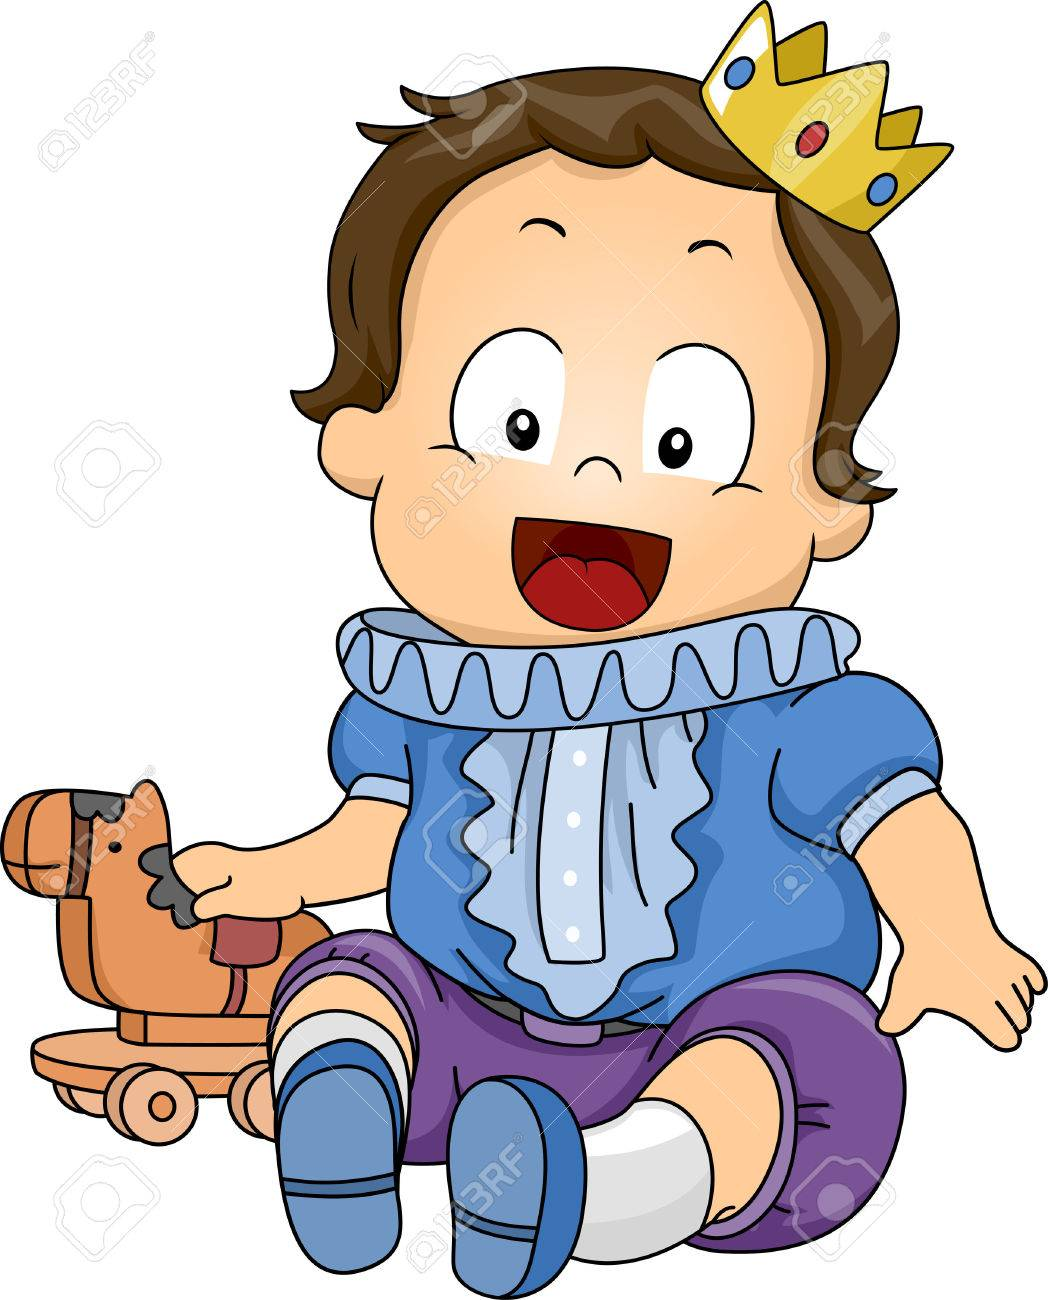 1048x1300 Illustration Featuring A Baby Dressed As A Prince Royalty Free